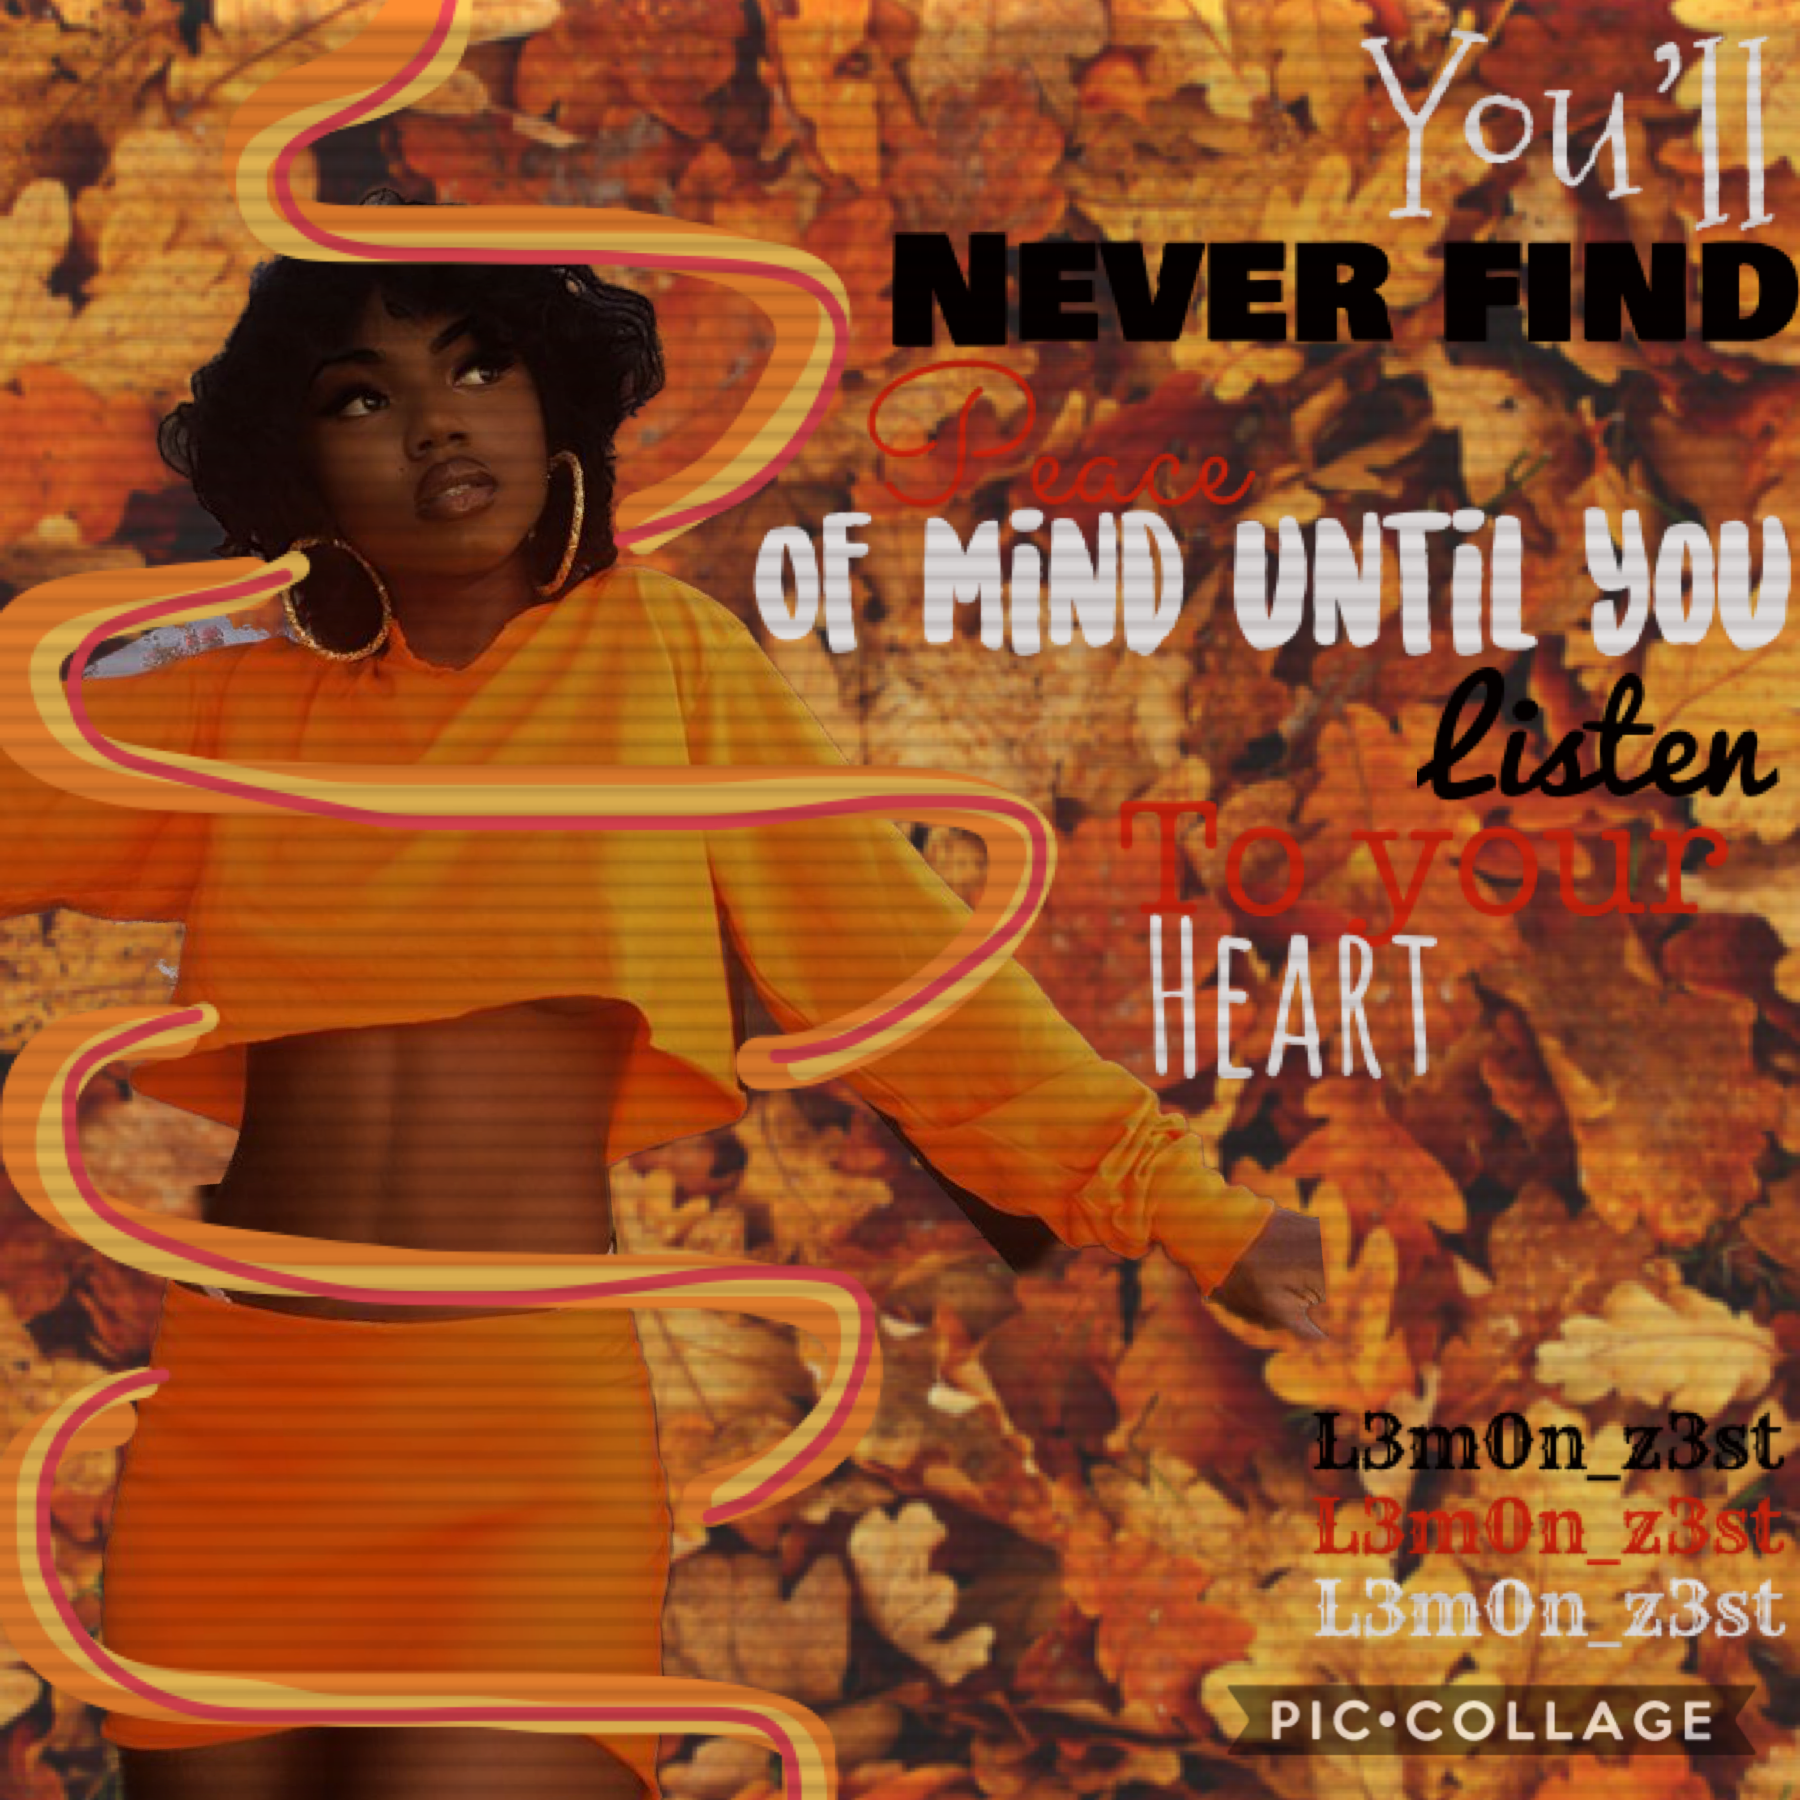 Black Lives Matter 🖤🧡  You'll never find peace of mind until you listen to your heart